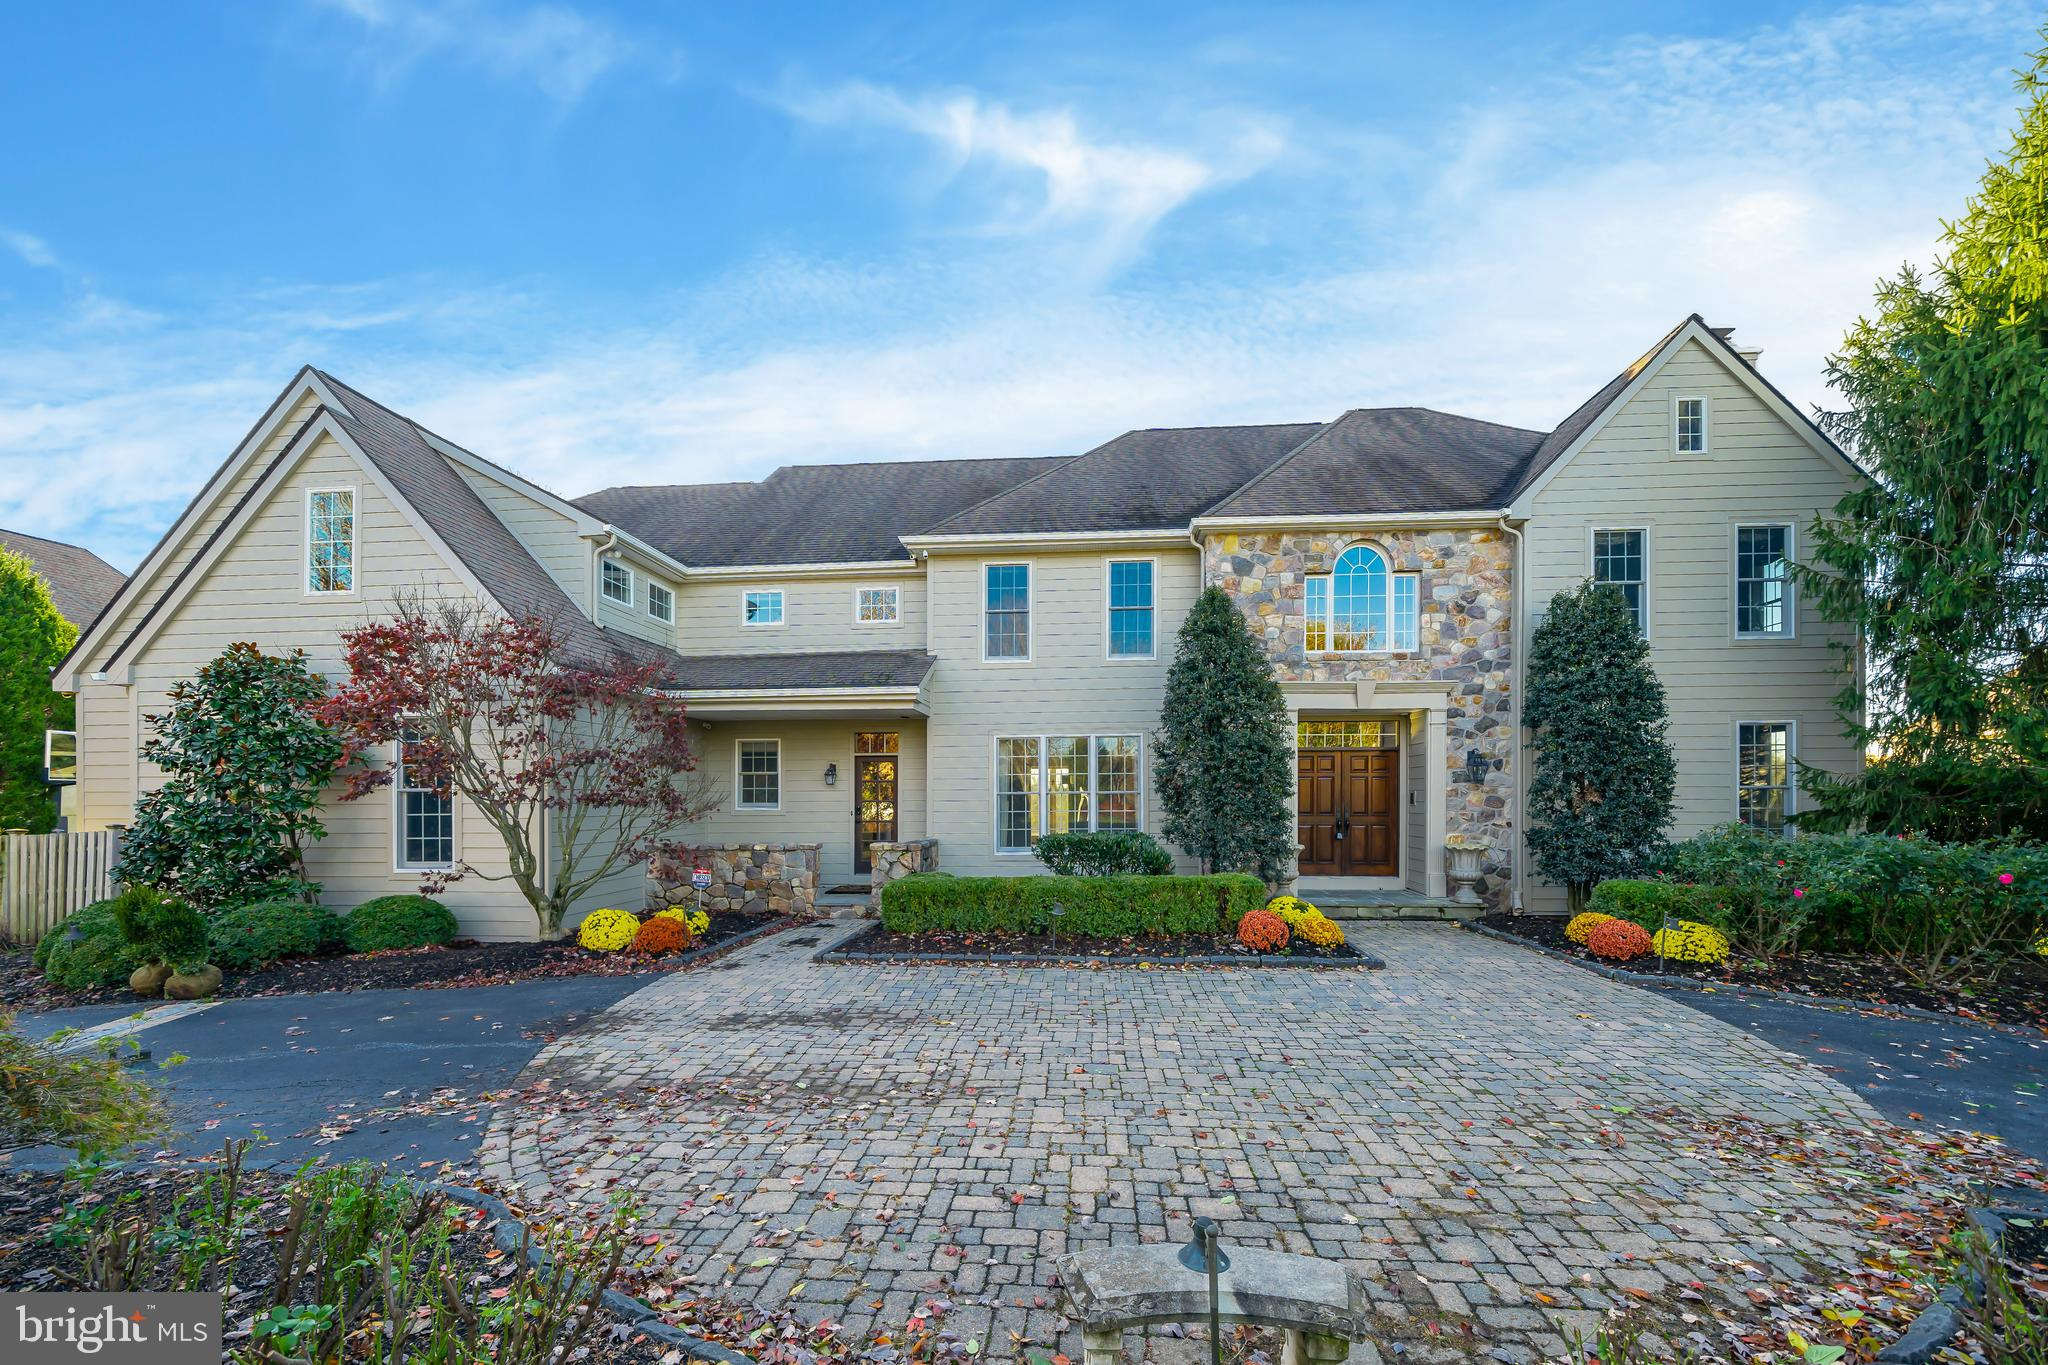 1114 LEGACY LANE, WEST CHESTER, PA 19382